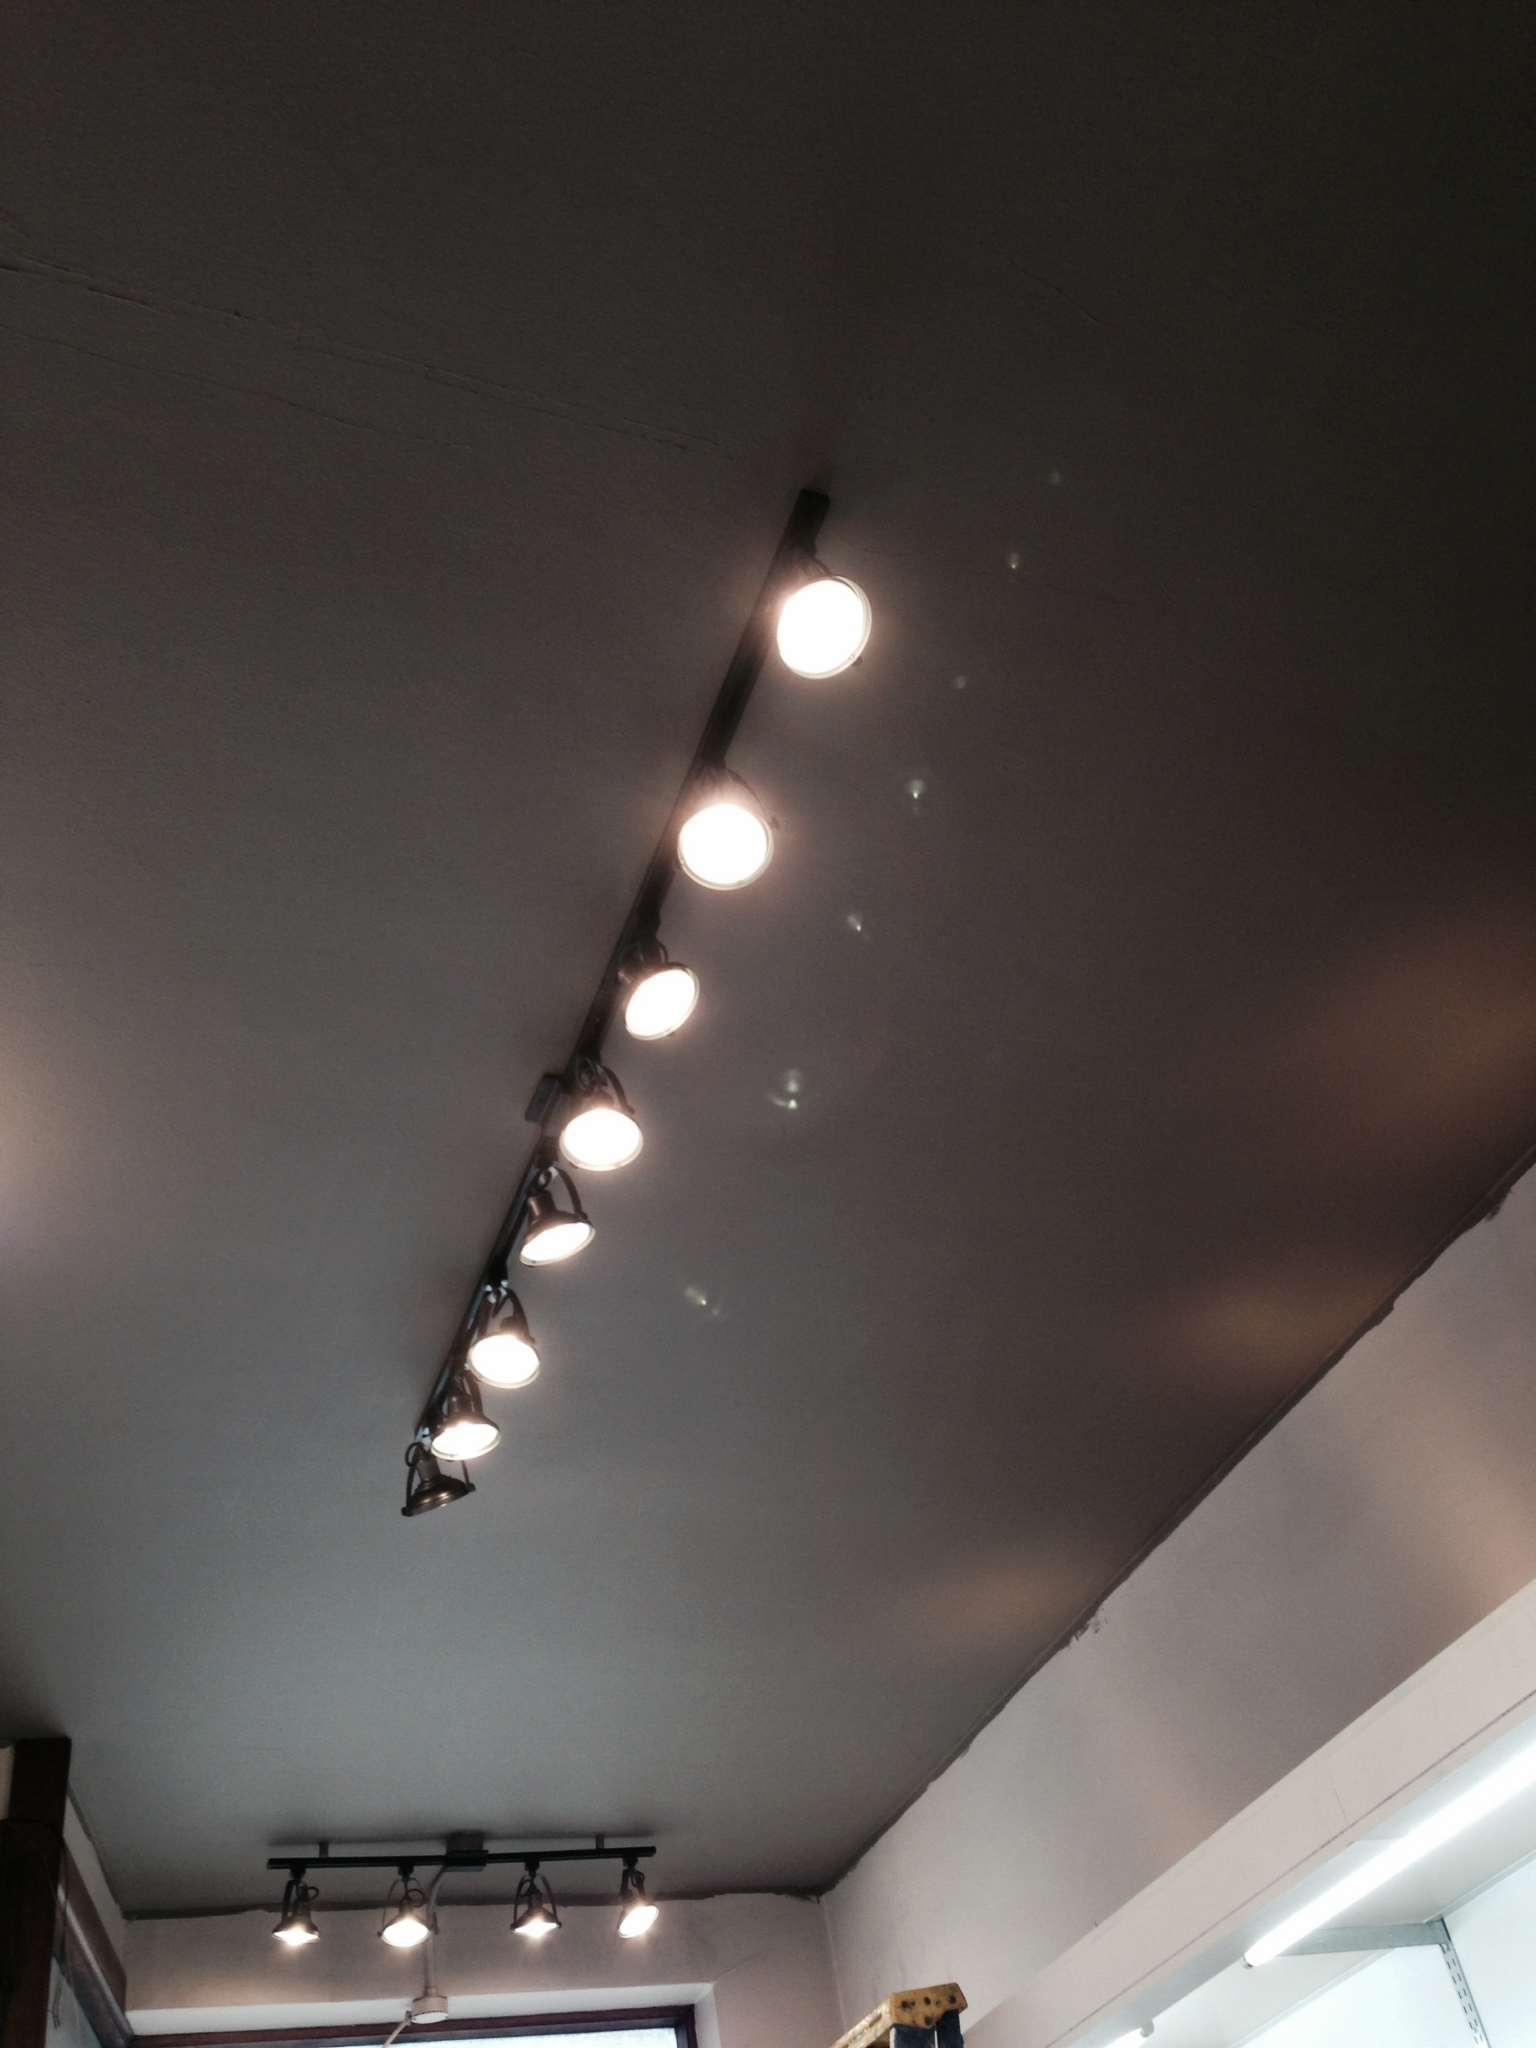 the new lights and the ceiling paint! loving the warm feeling you get from just these two changes!